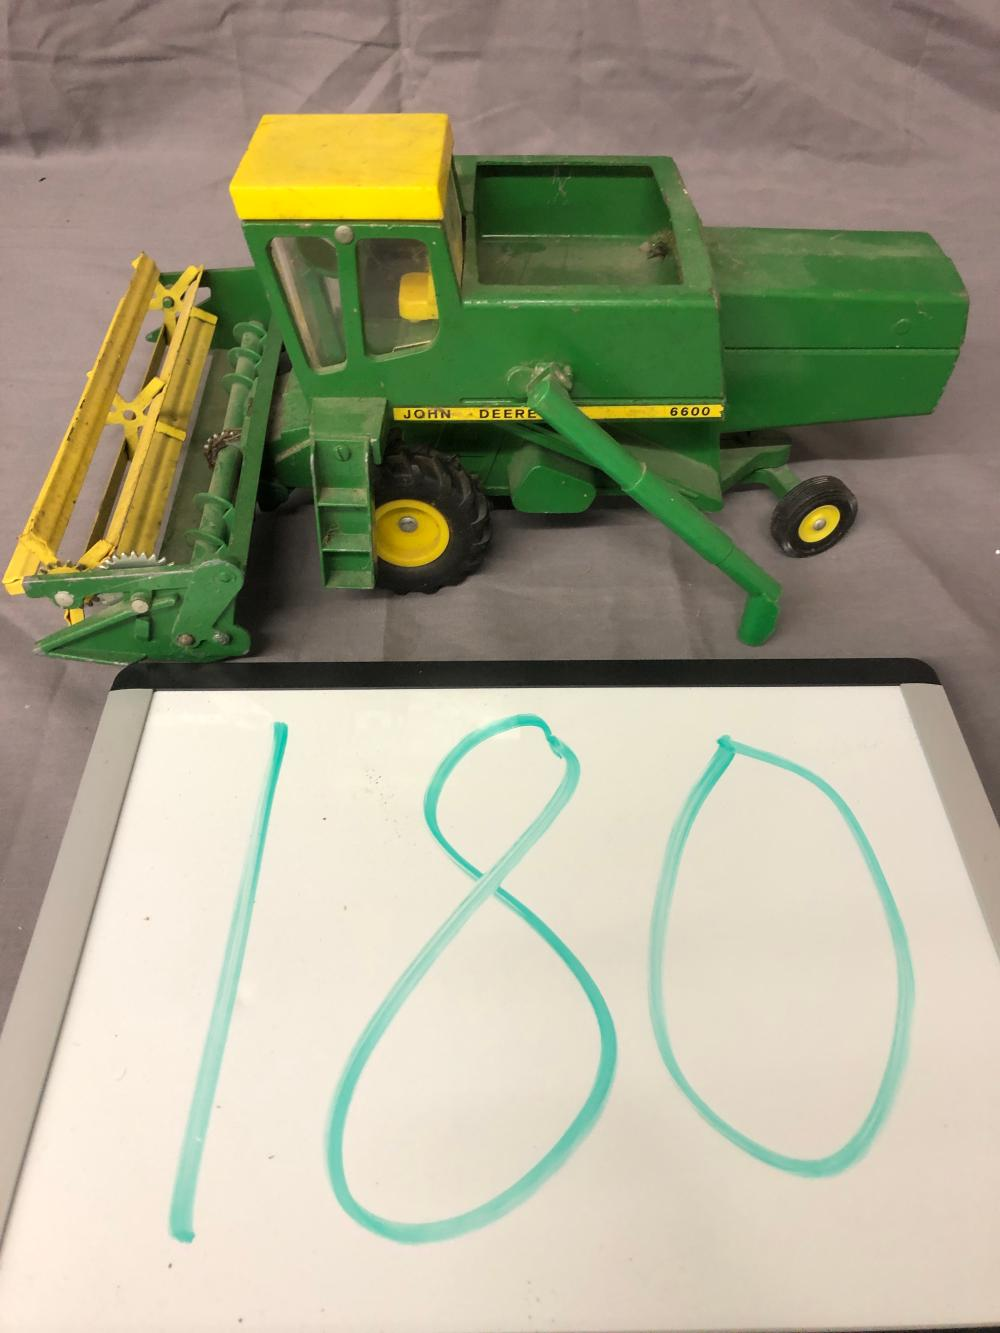 Lot 180: 1/32nd Scale John Deere 6600 Combine